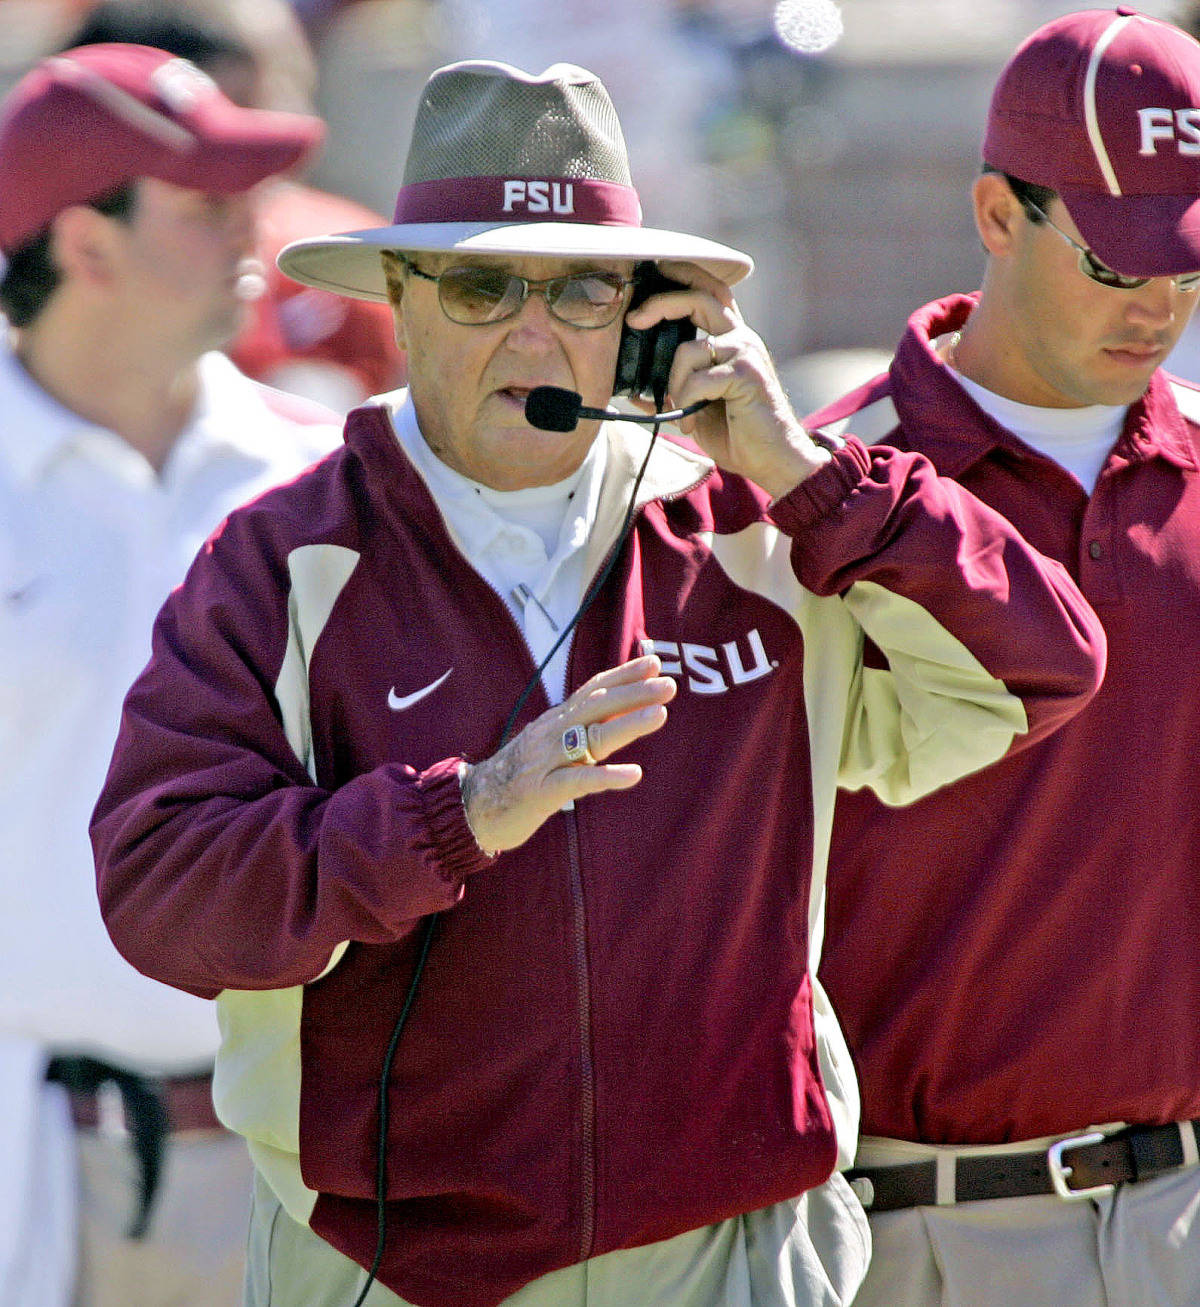 Florida State head coach Bobby Bowden talks to his coaches during the second quarter of a college football game against Virginia, Saturday, Nov. 4, 2006, in Tallahassee, Fla. FSU won 33-0. (AP Photo/Phil Coale)